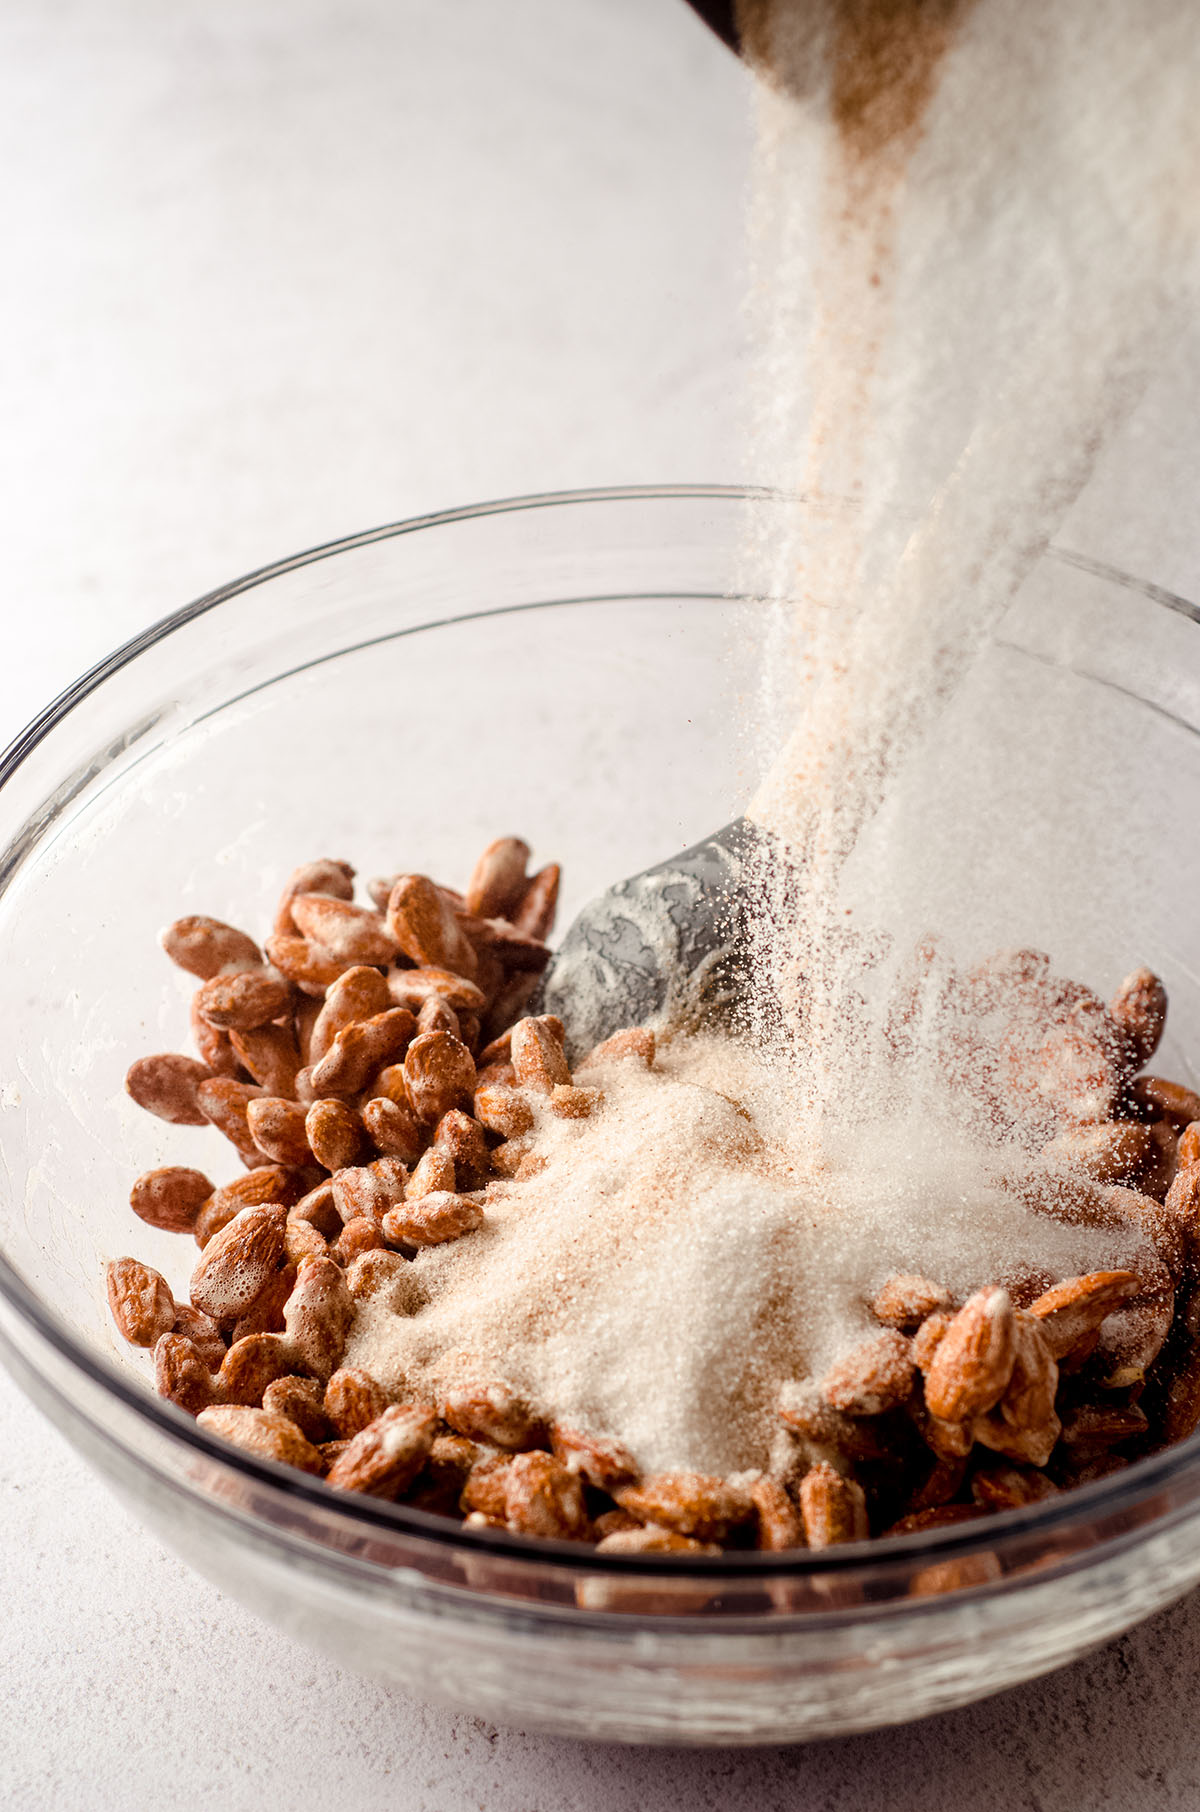 a bowl of almonds coated in vanilla bean paste and frothed egg whites with a bowl of sugar and cinnamon pouring on top to make candied almonds